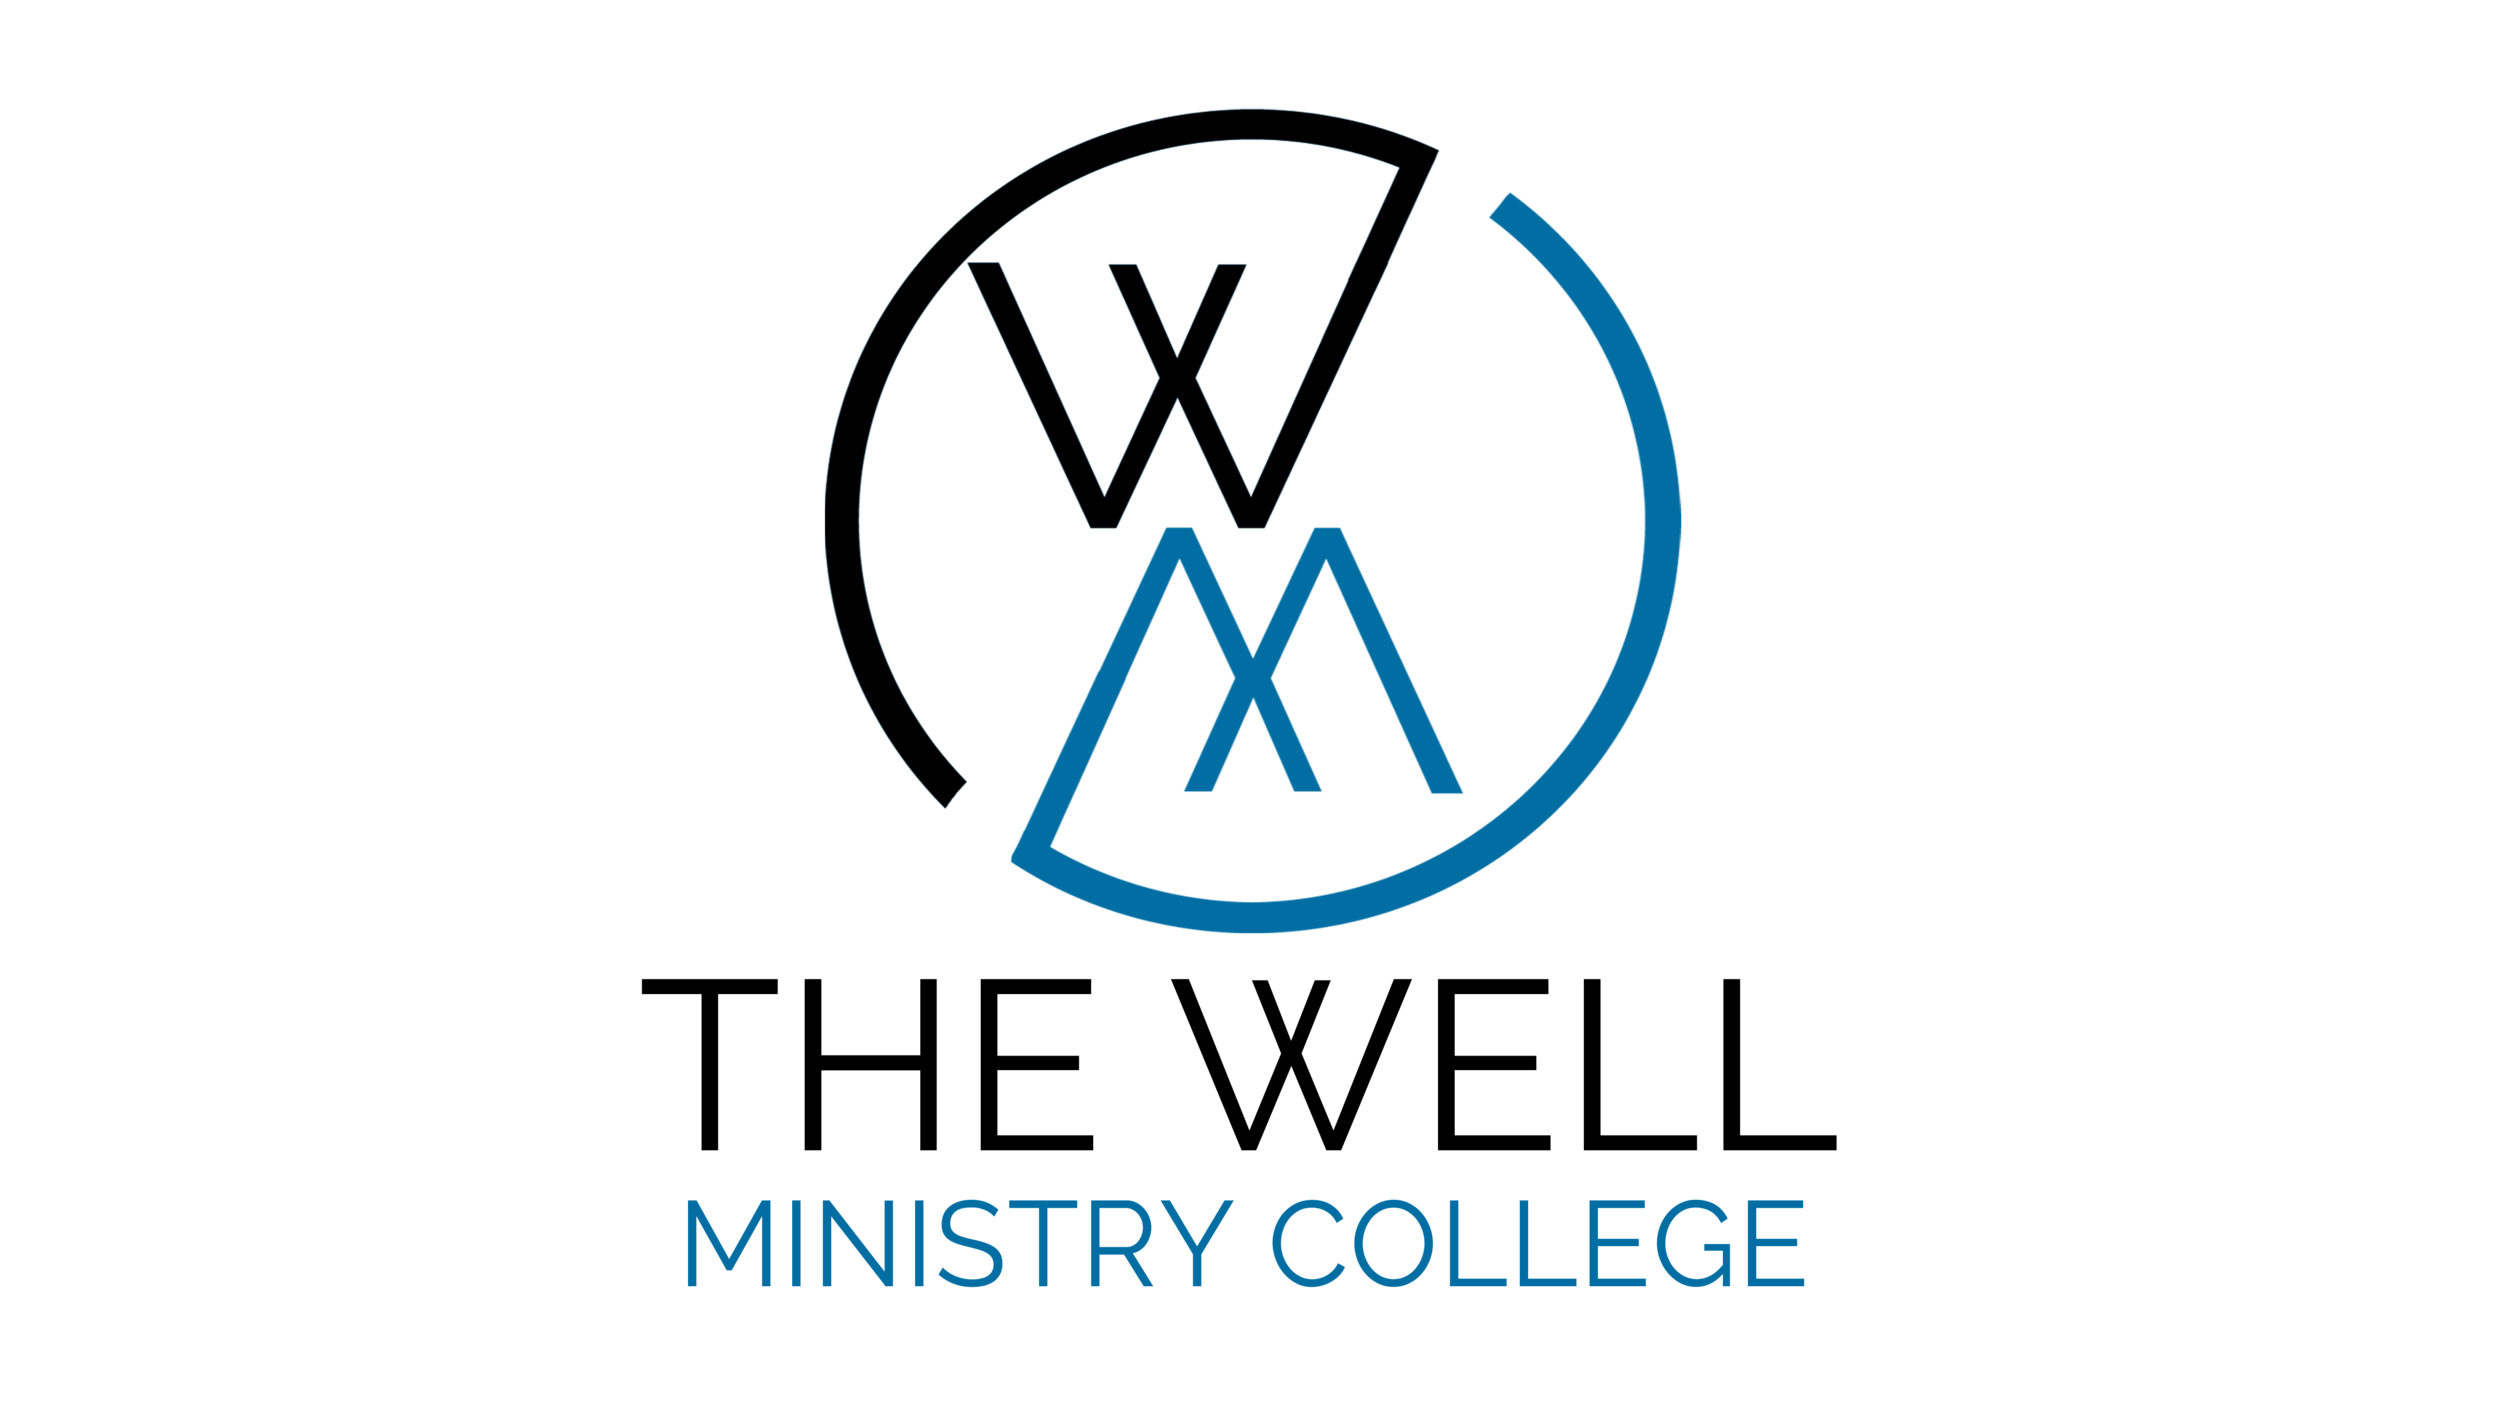 Ministry College Large.png